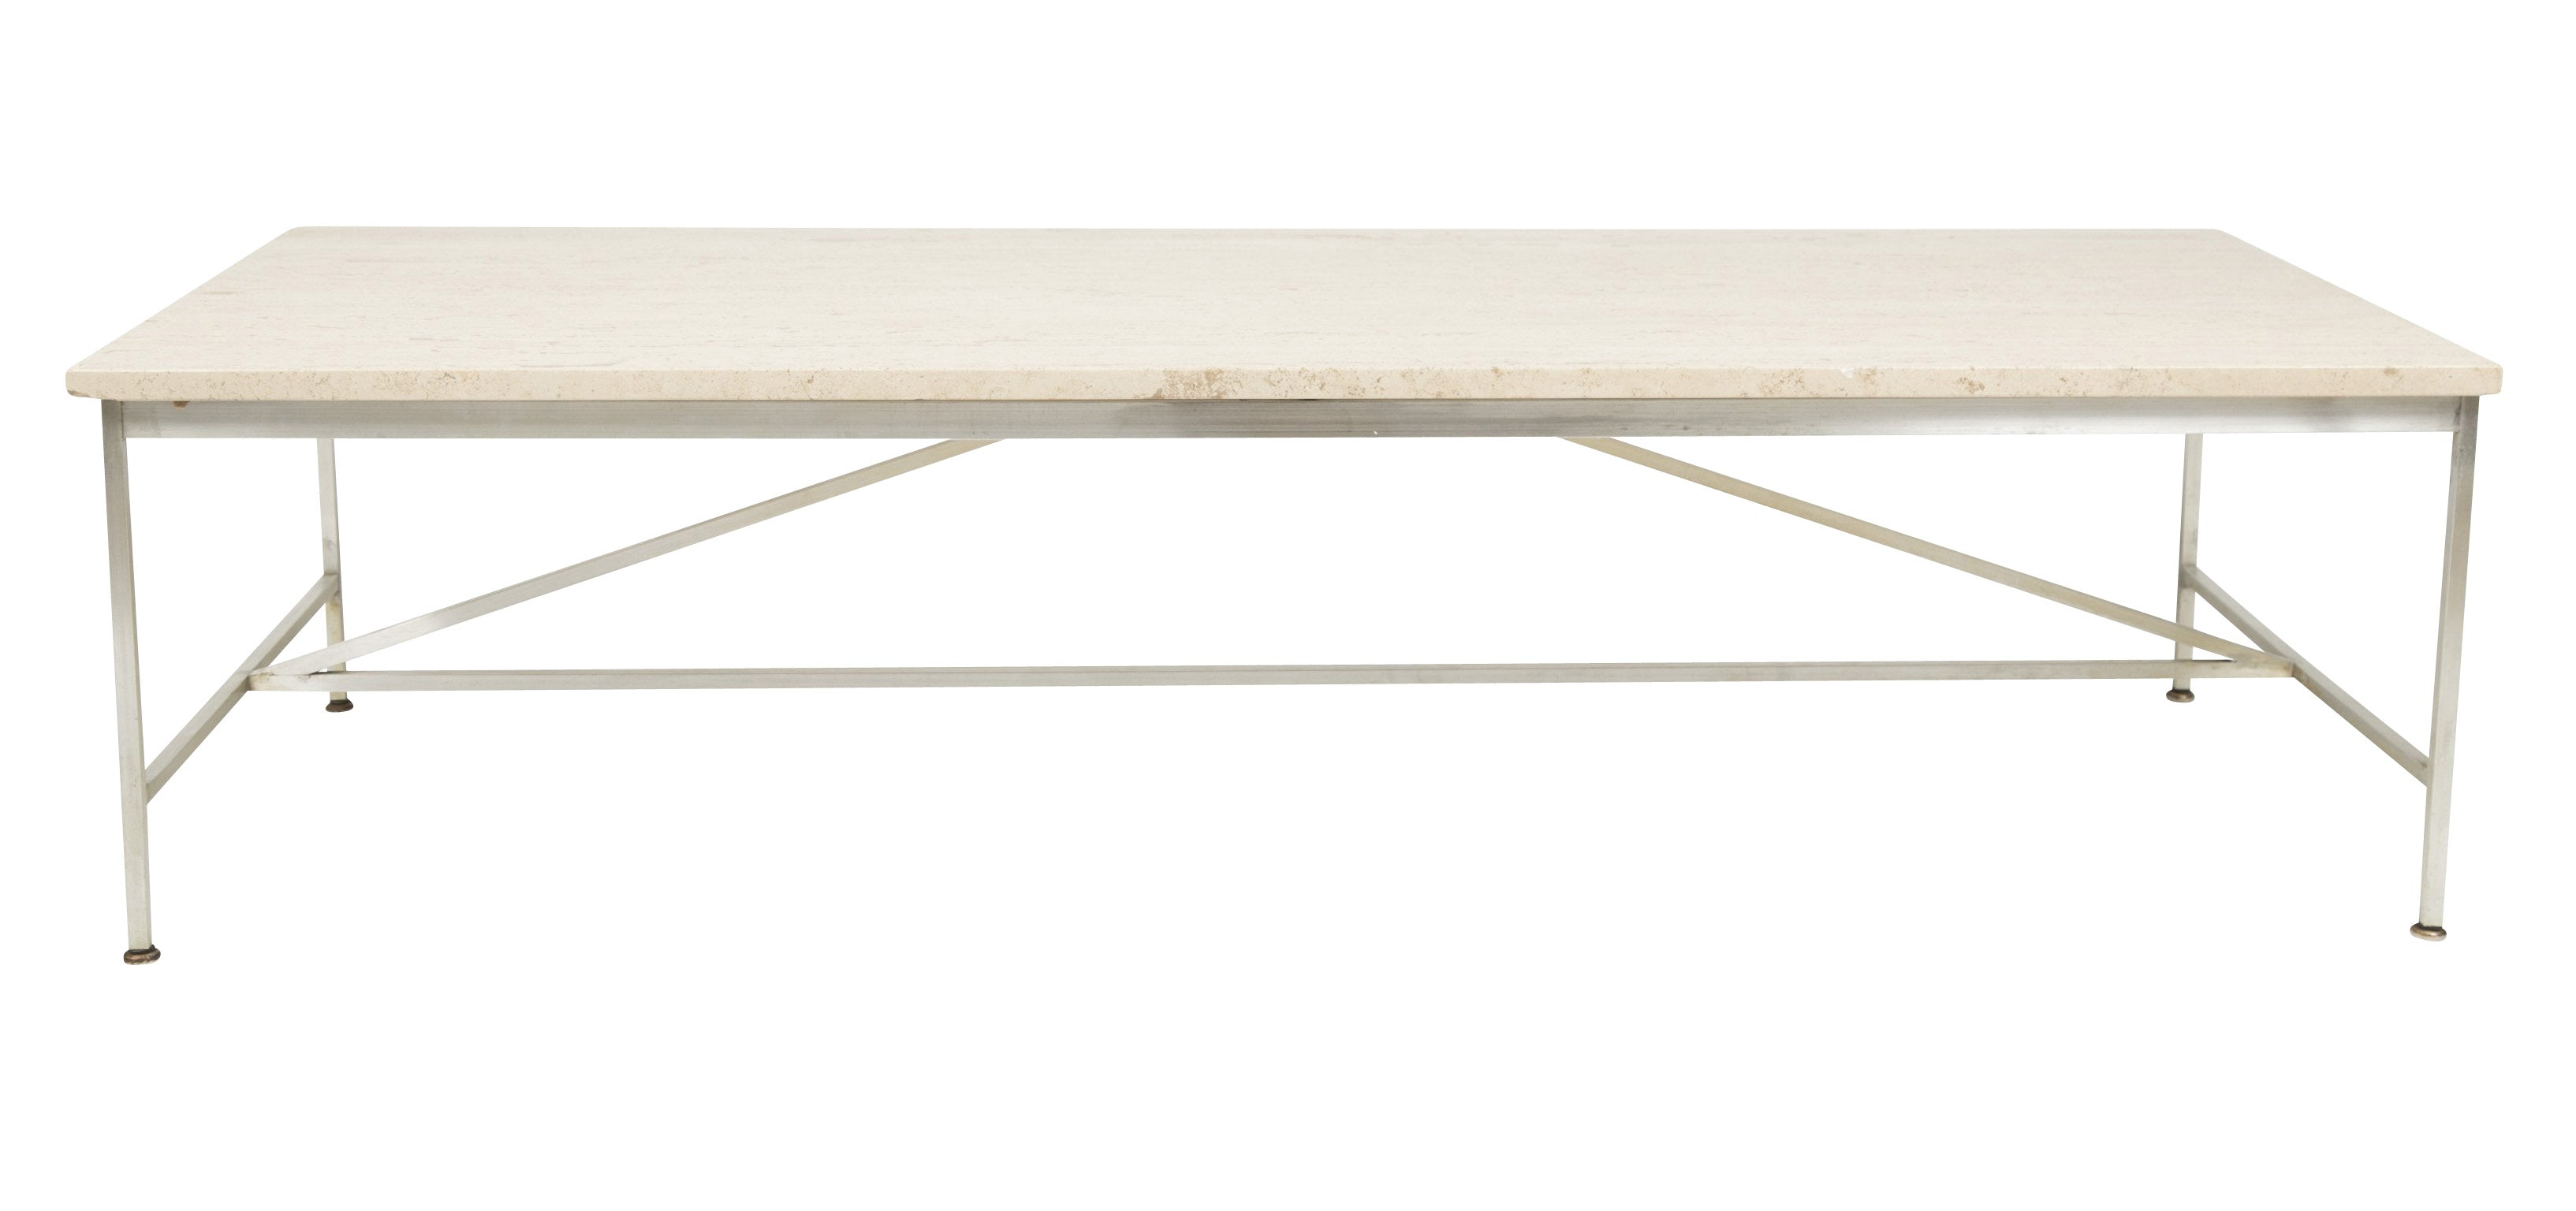 An Aluminum and Travertine Coffee Table Designed by Paul McCobb